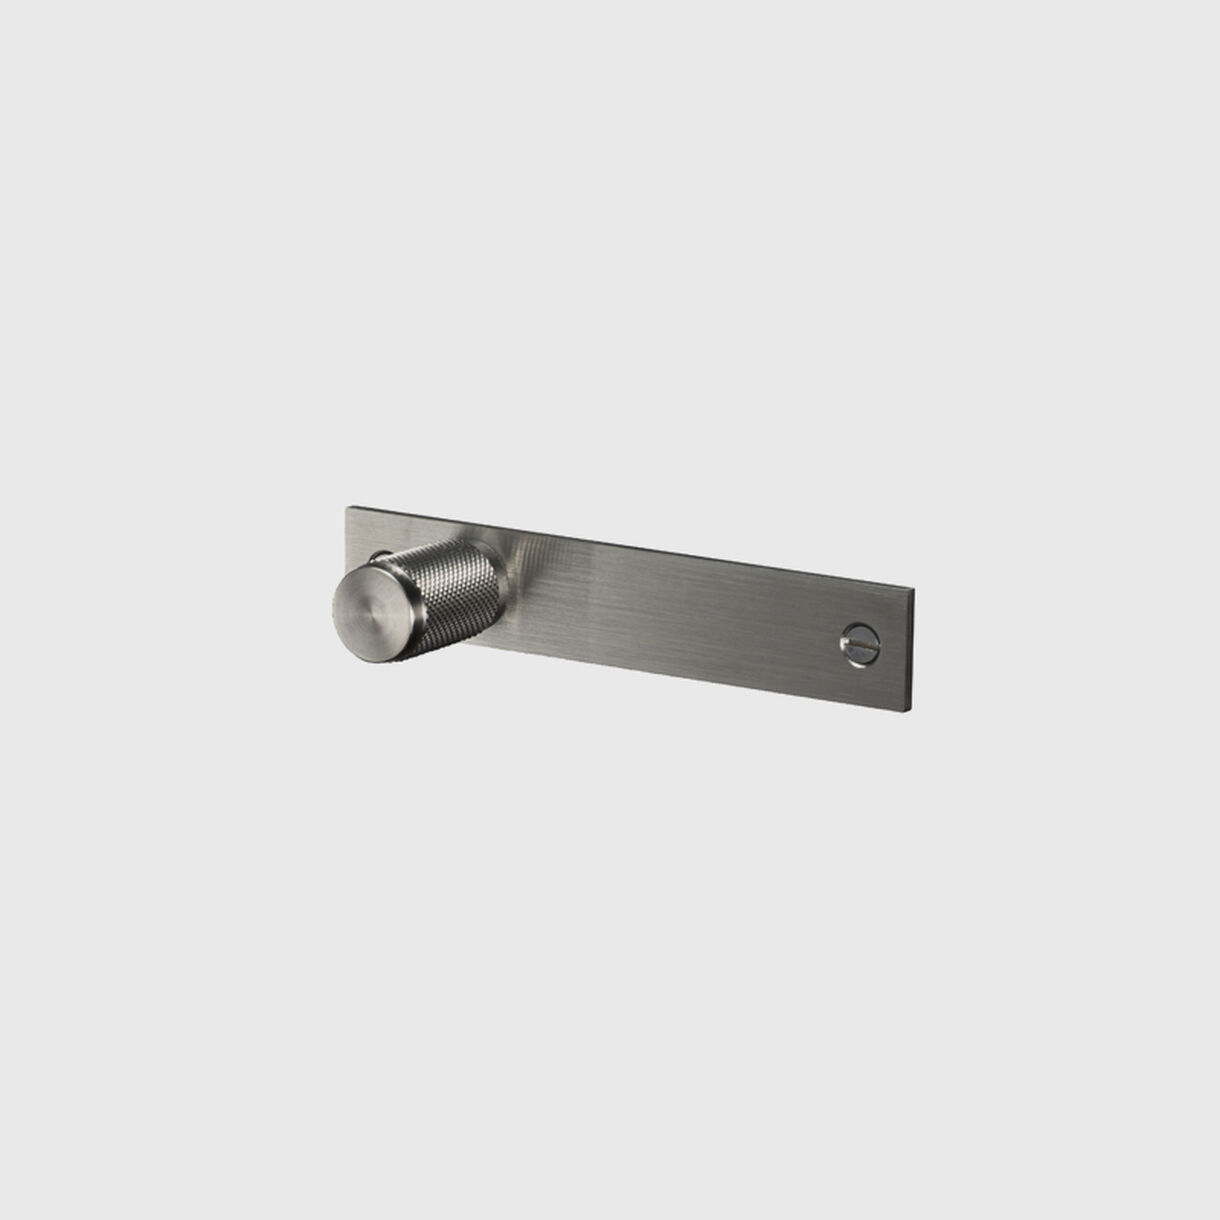 Furniture Knob with Plate, Steel